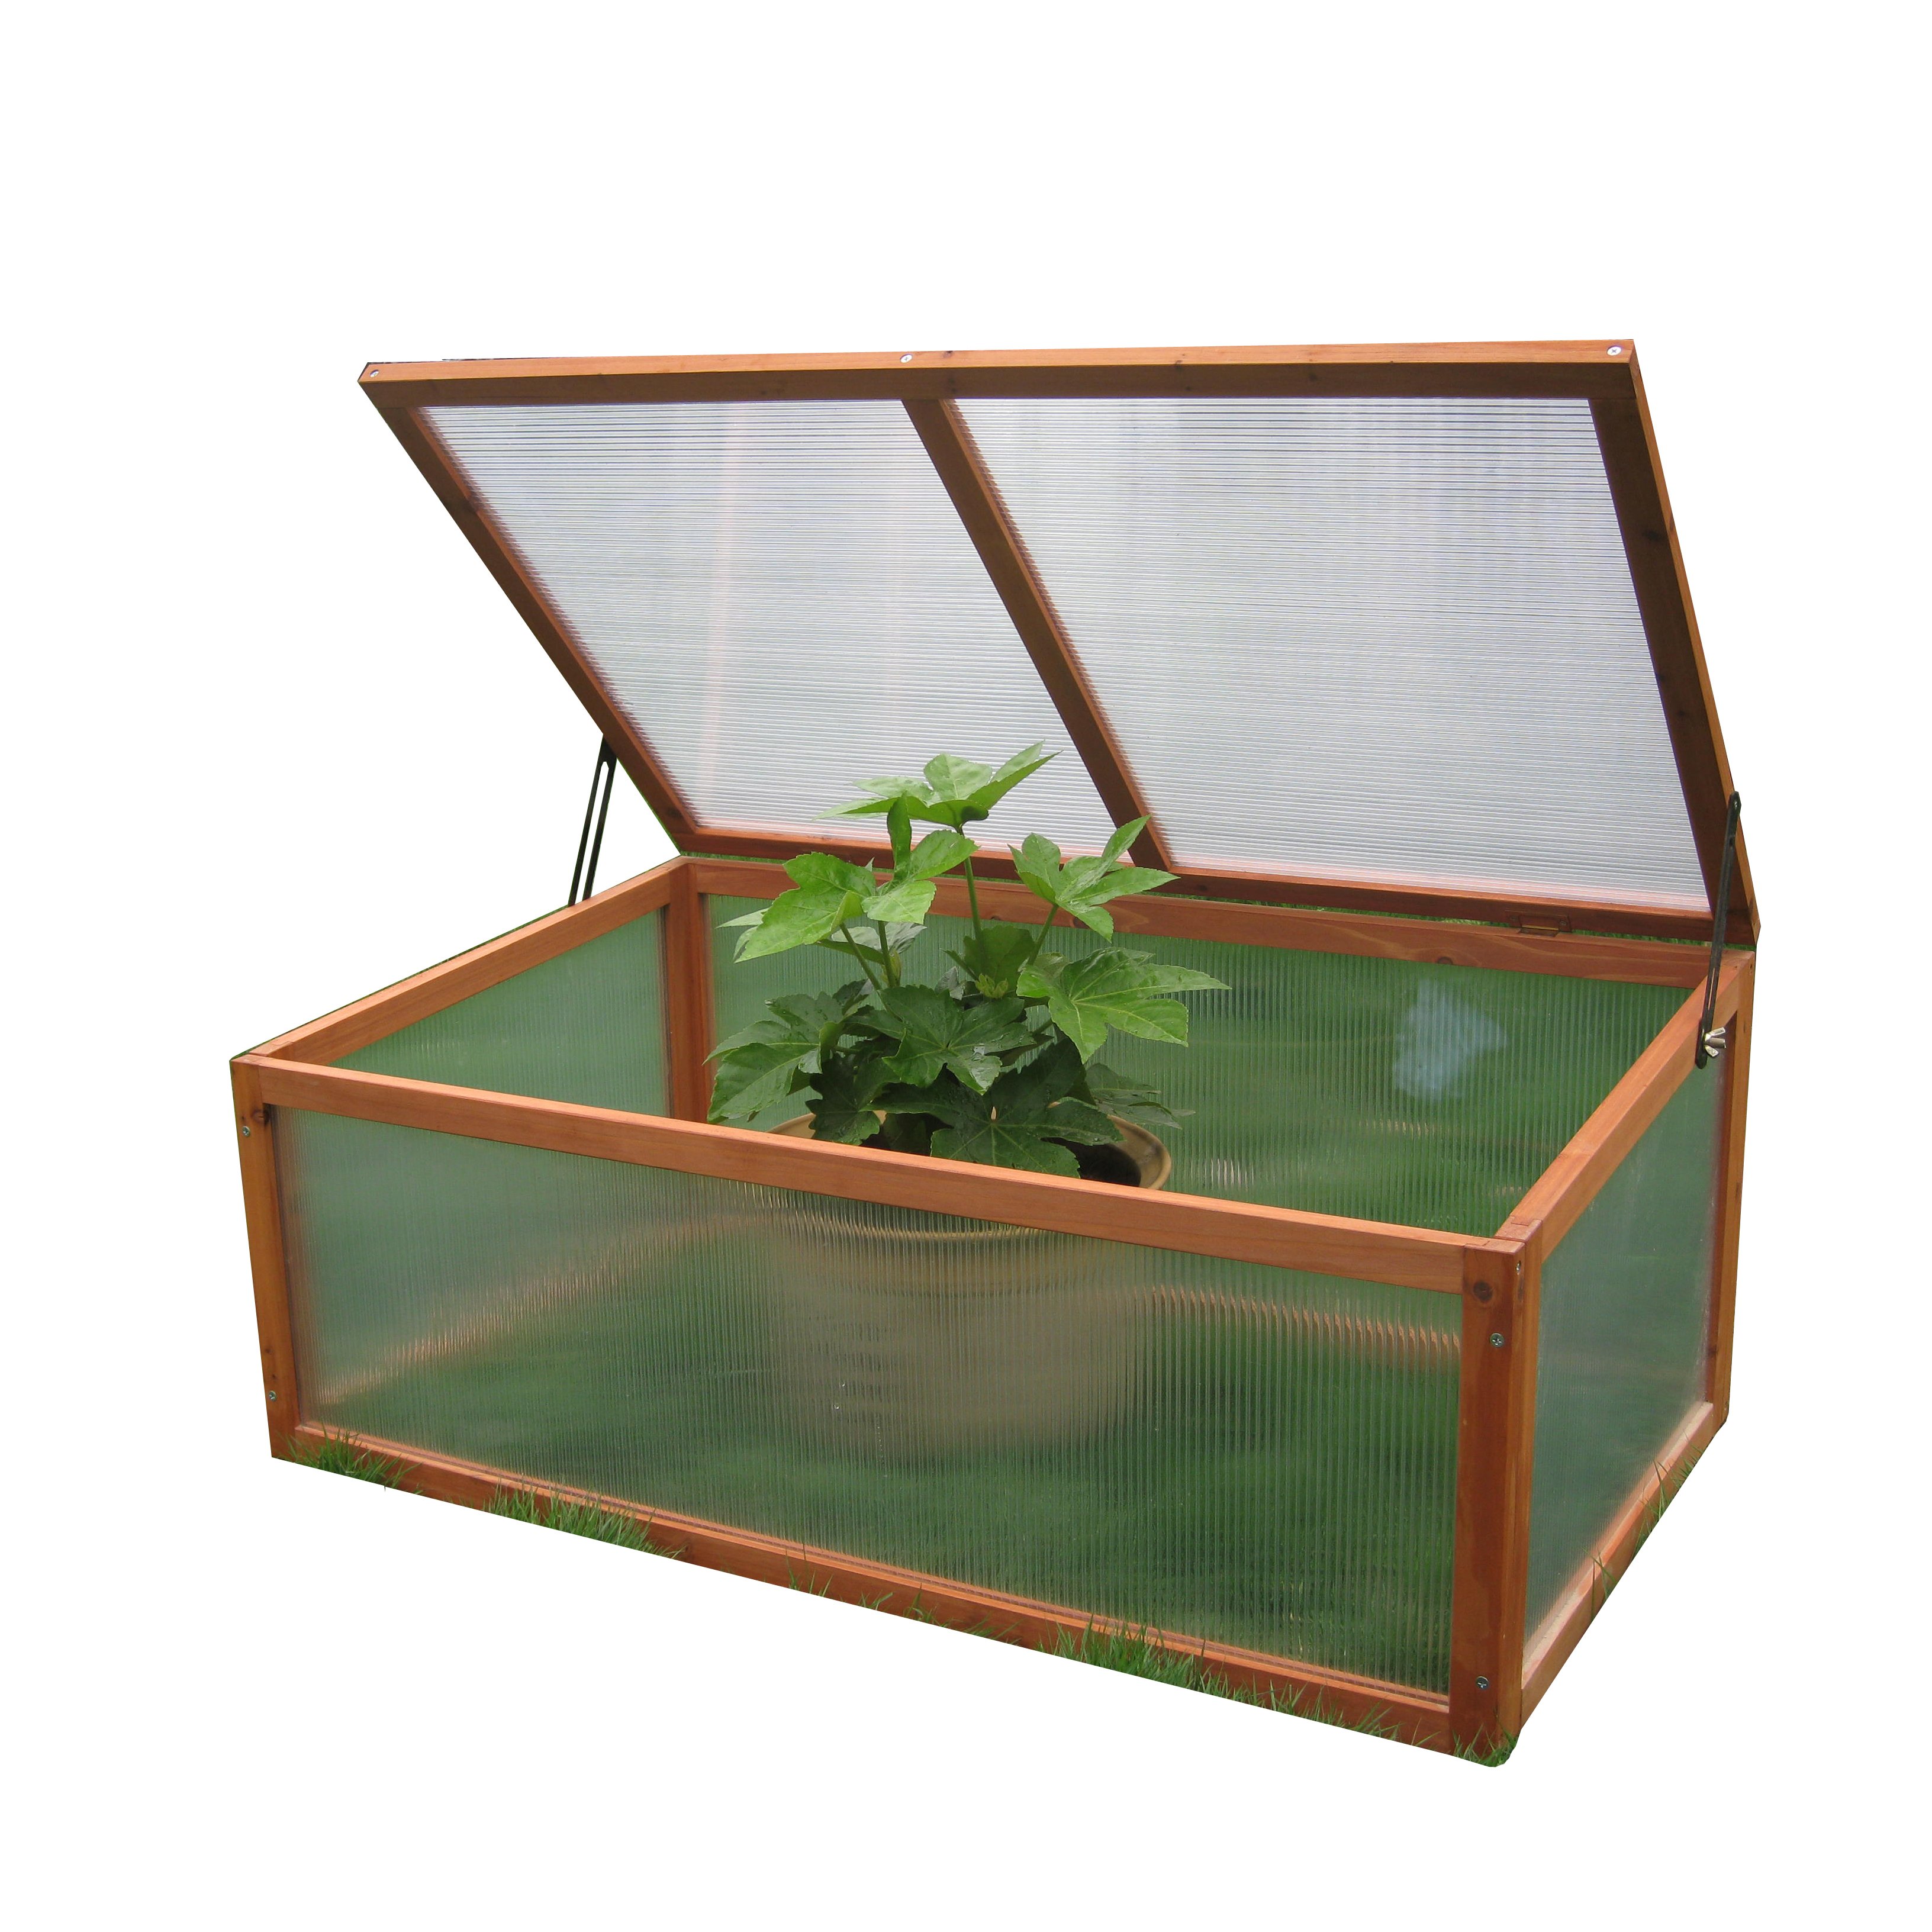 Wood Cold Frame Garden Greenhouse Raised Bed Protective Planter for Vegetable and Flowers, Indoor and Outdoor Vented Plant Cover Featured Image